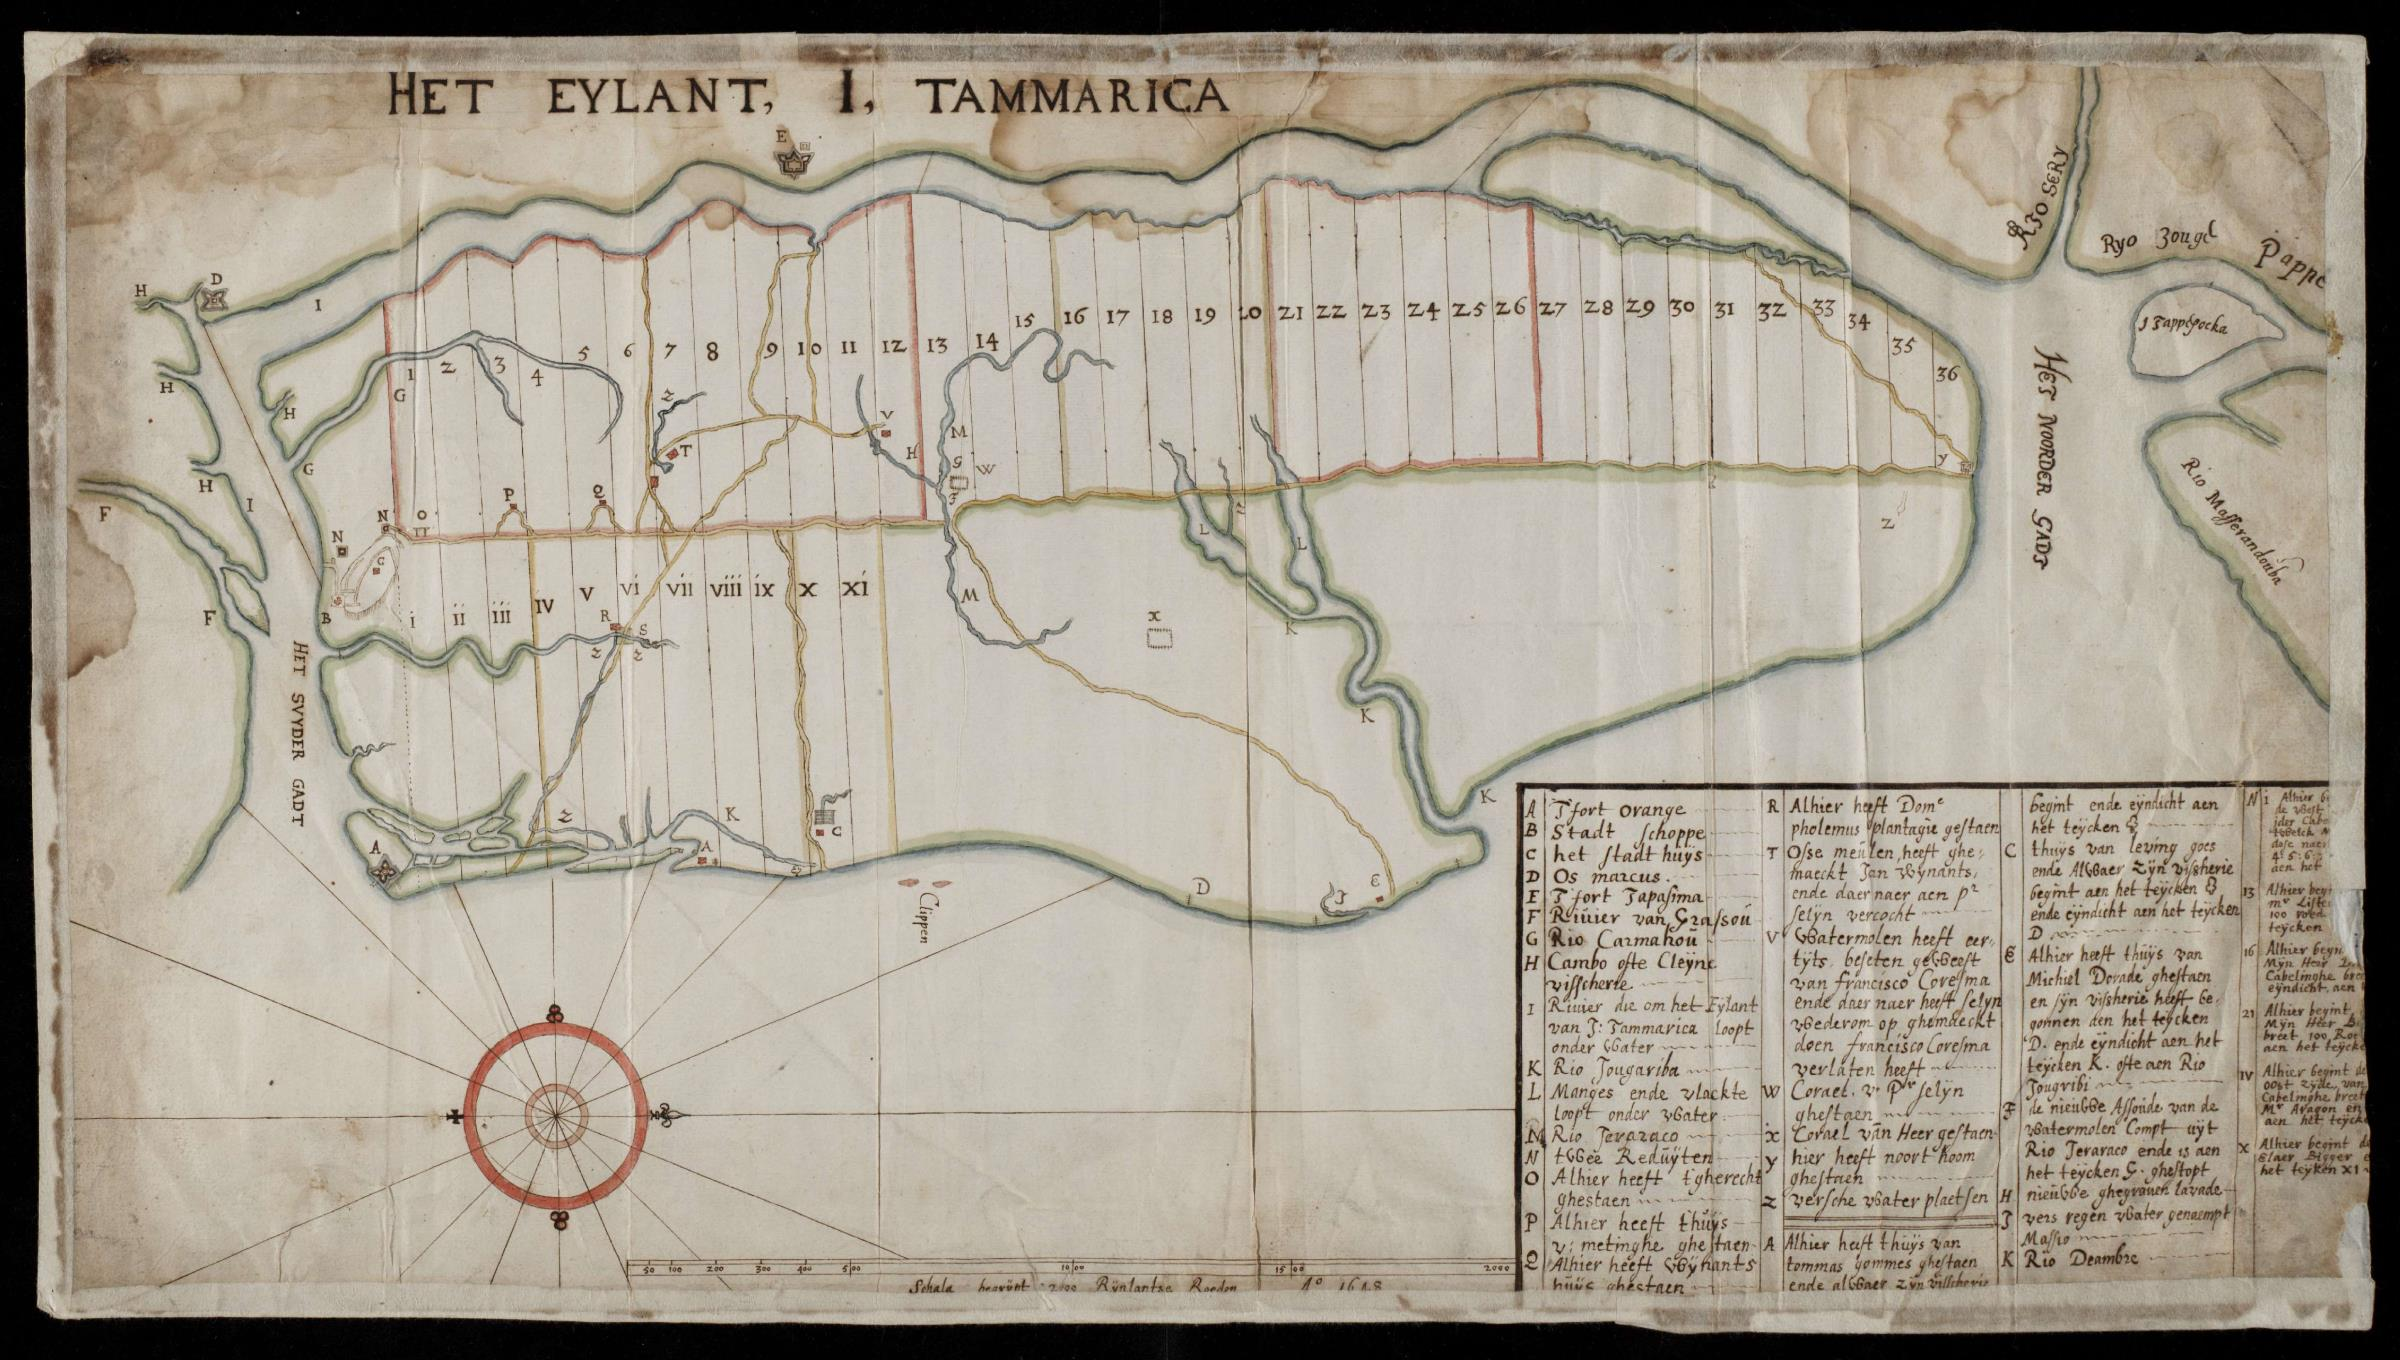 AMH-8577-NA_Map_of_Itamaraca.jpg (2400×1360)